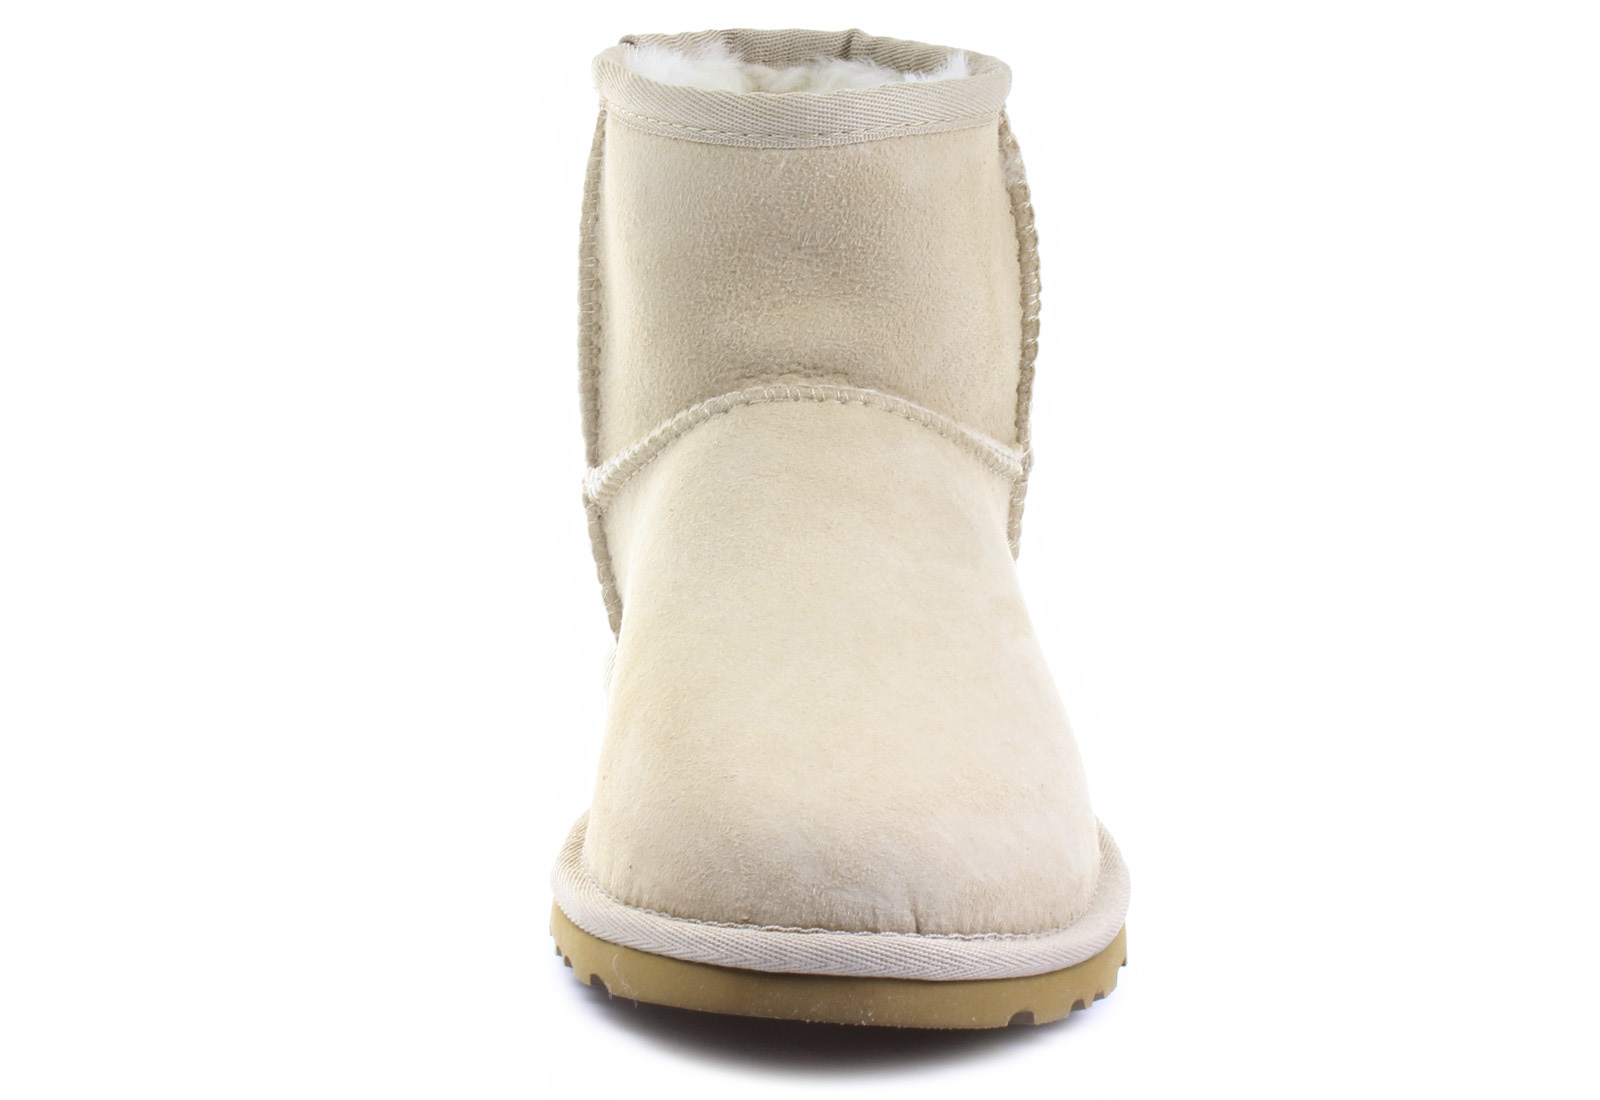 aeabac0835a Office Classic Tall Ugg Boots - cheap watches mgc-gas.com